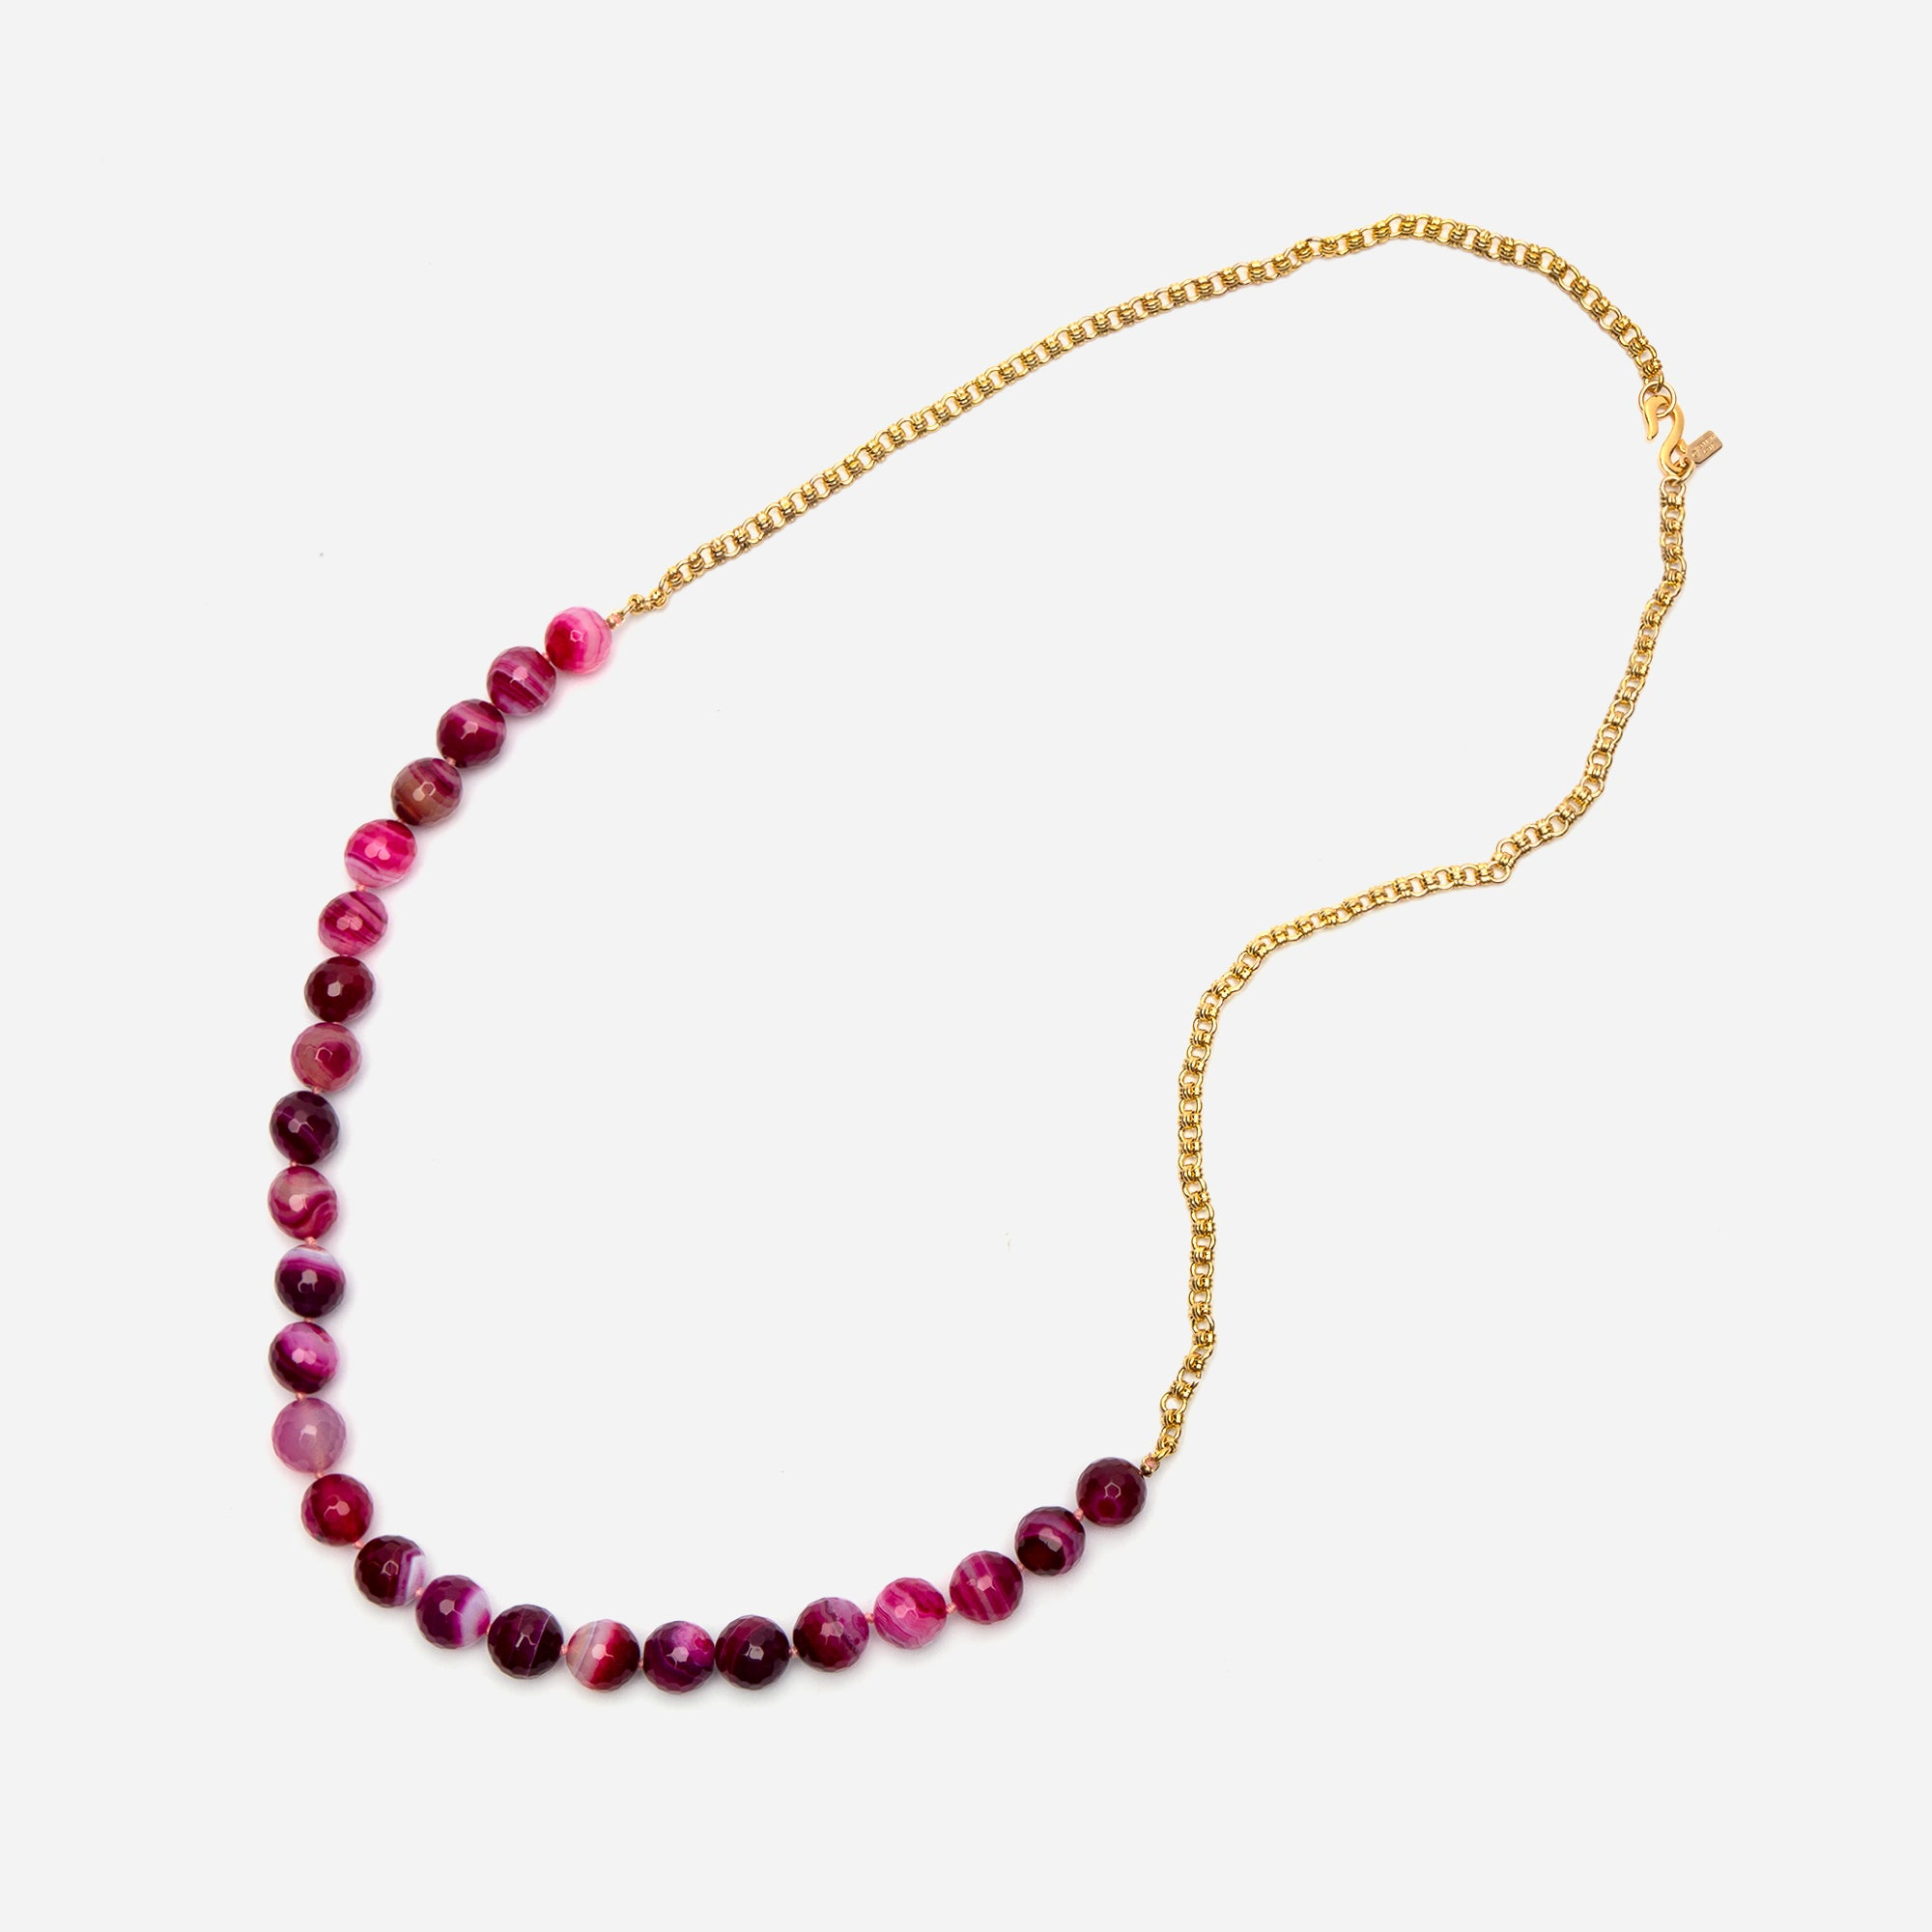 Cherry Agate Bead Necklace - Frances Valentine